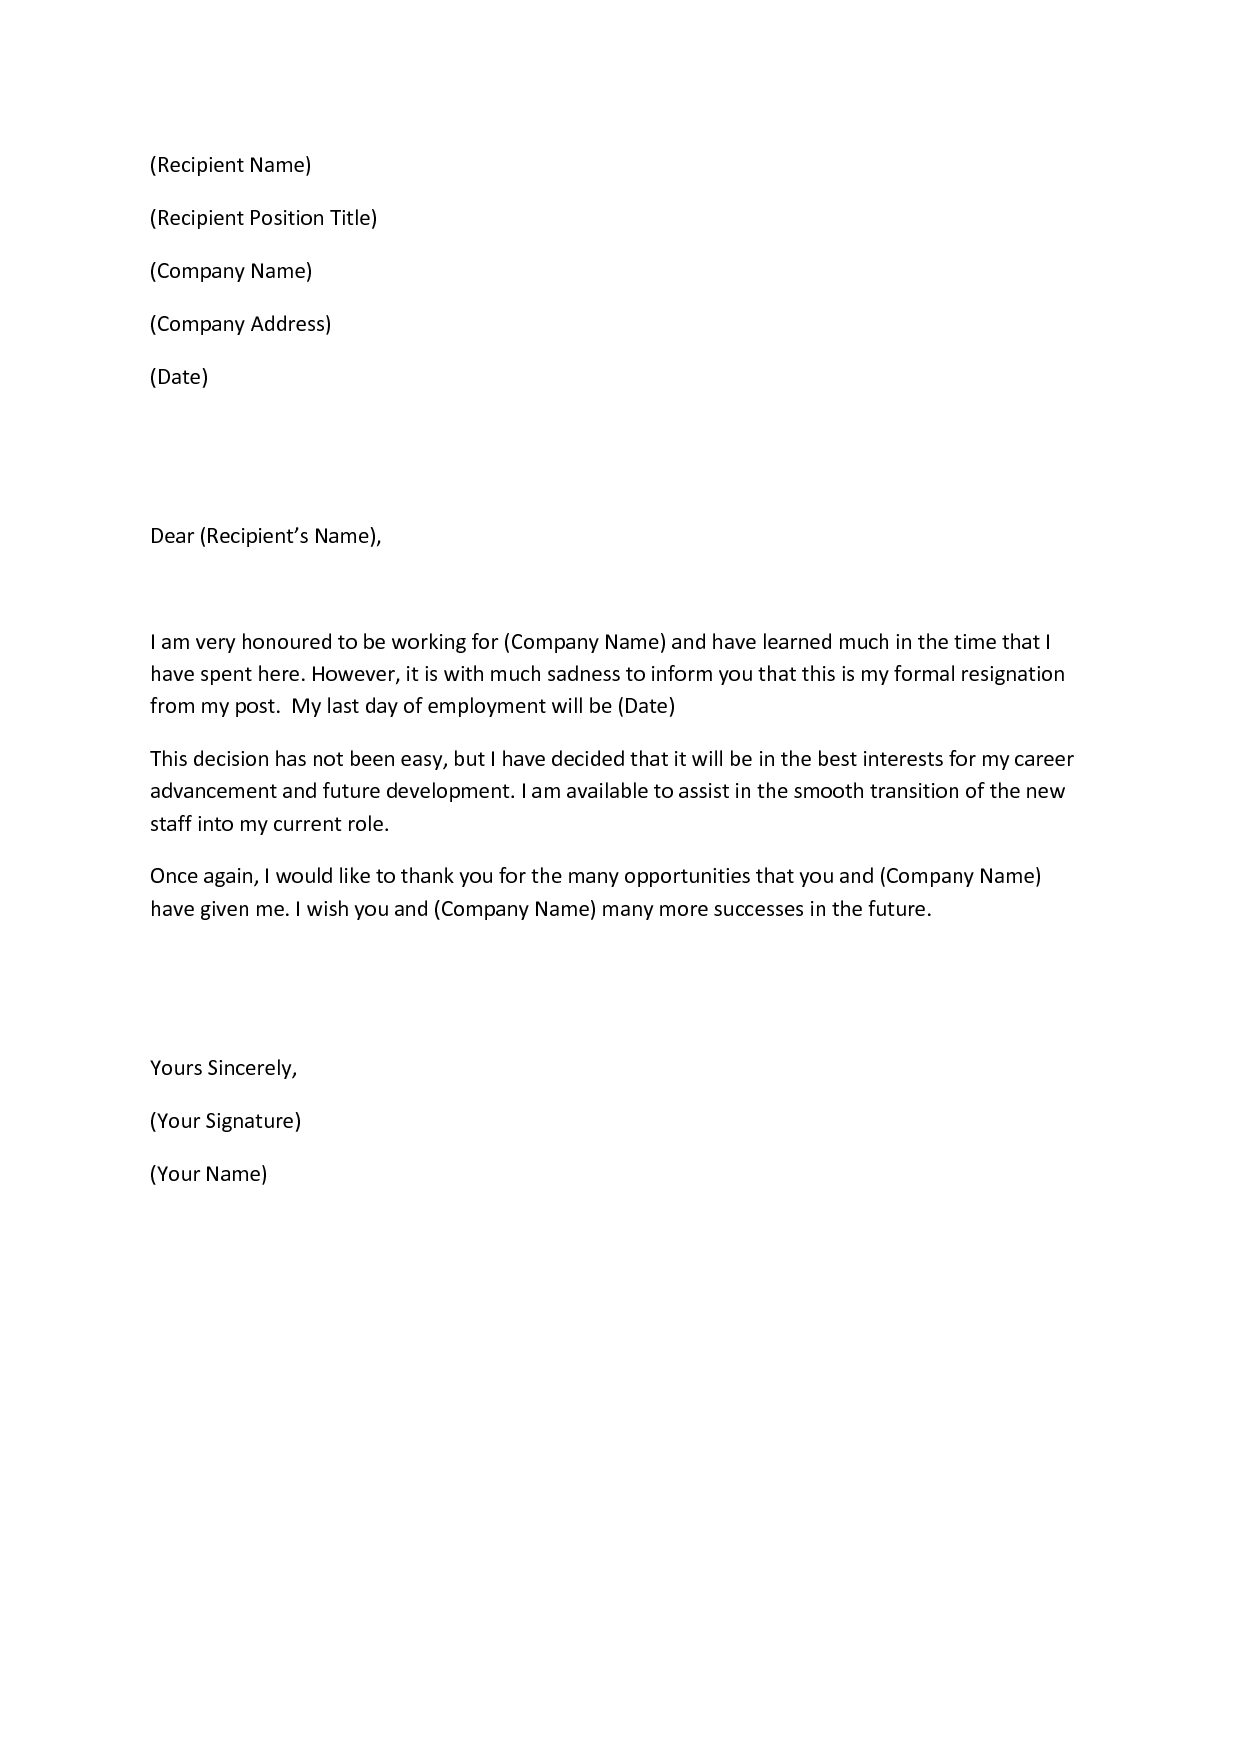 18 Photos Of Template Of Resignation Letter In Word | Marketing | Pinterest  | Resignation Letter, Template And Letter Sample